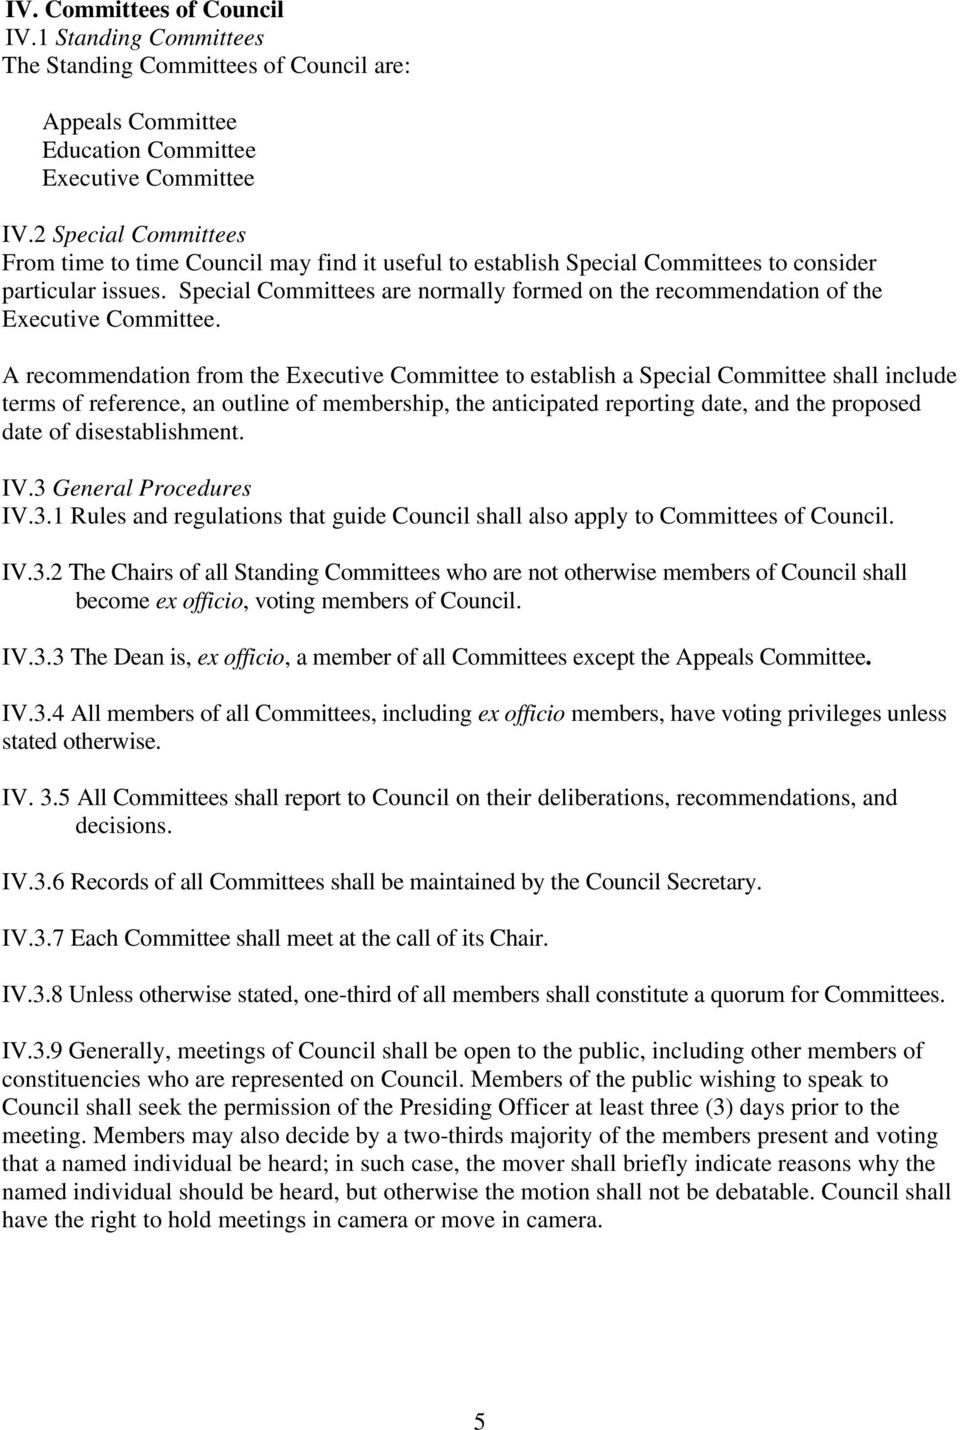 Special Committees are normally formed on the recommendation of the Executive Committee.